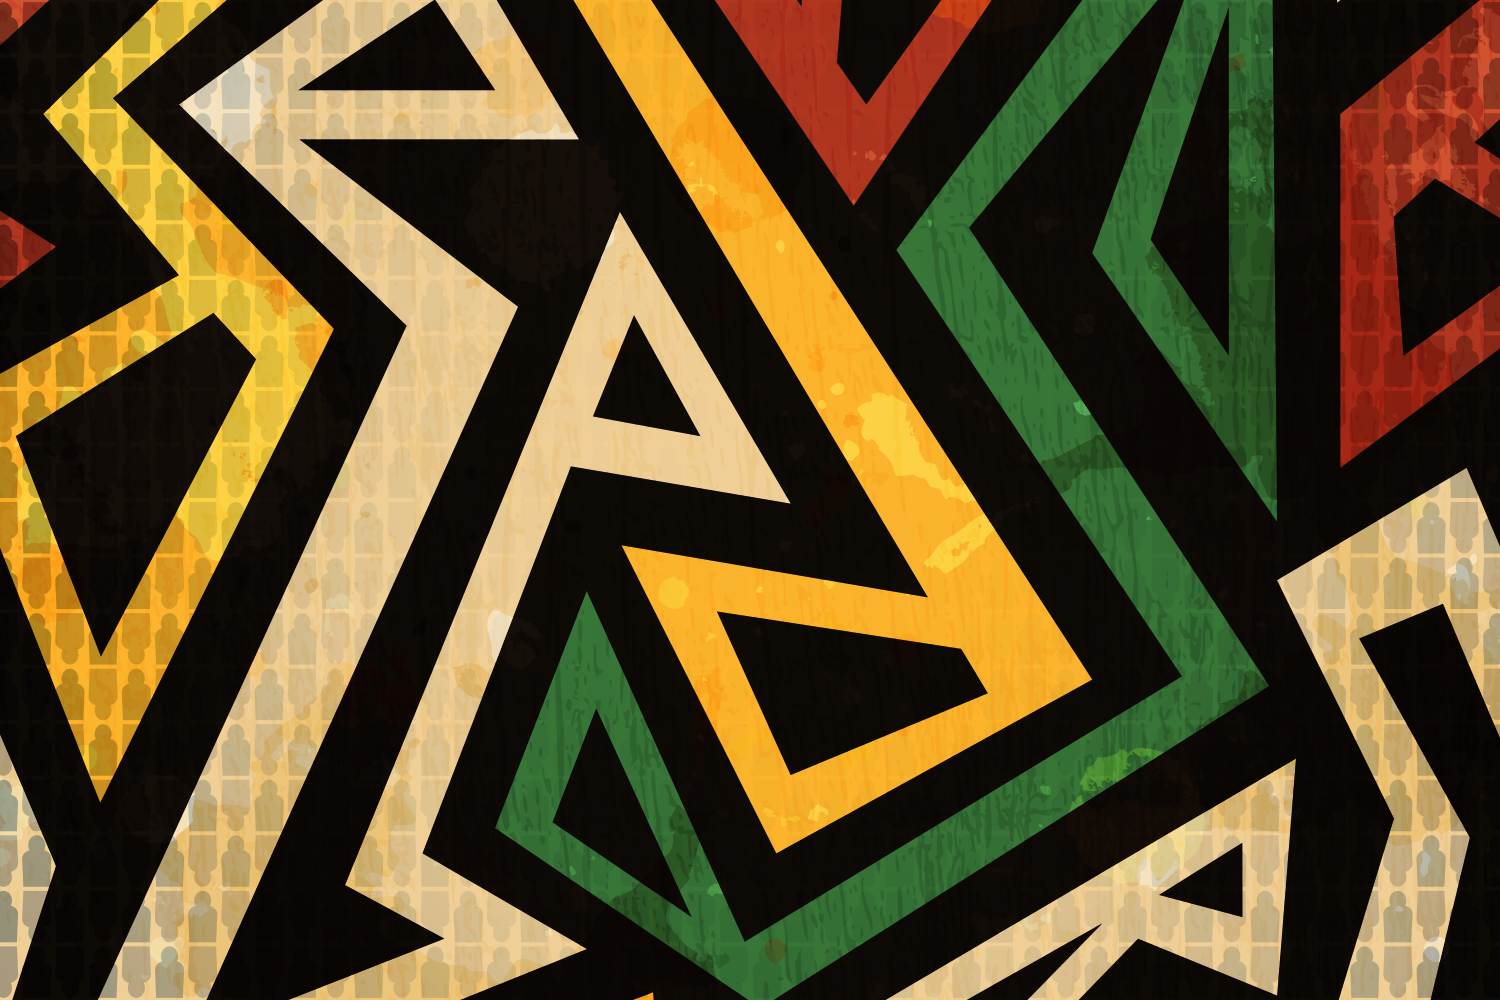 yellow green red and black pattern